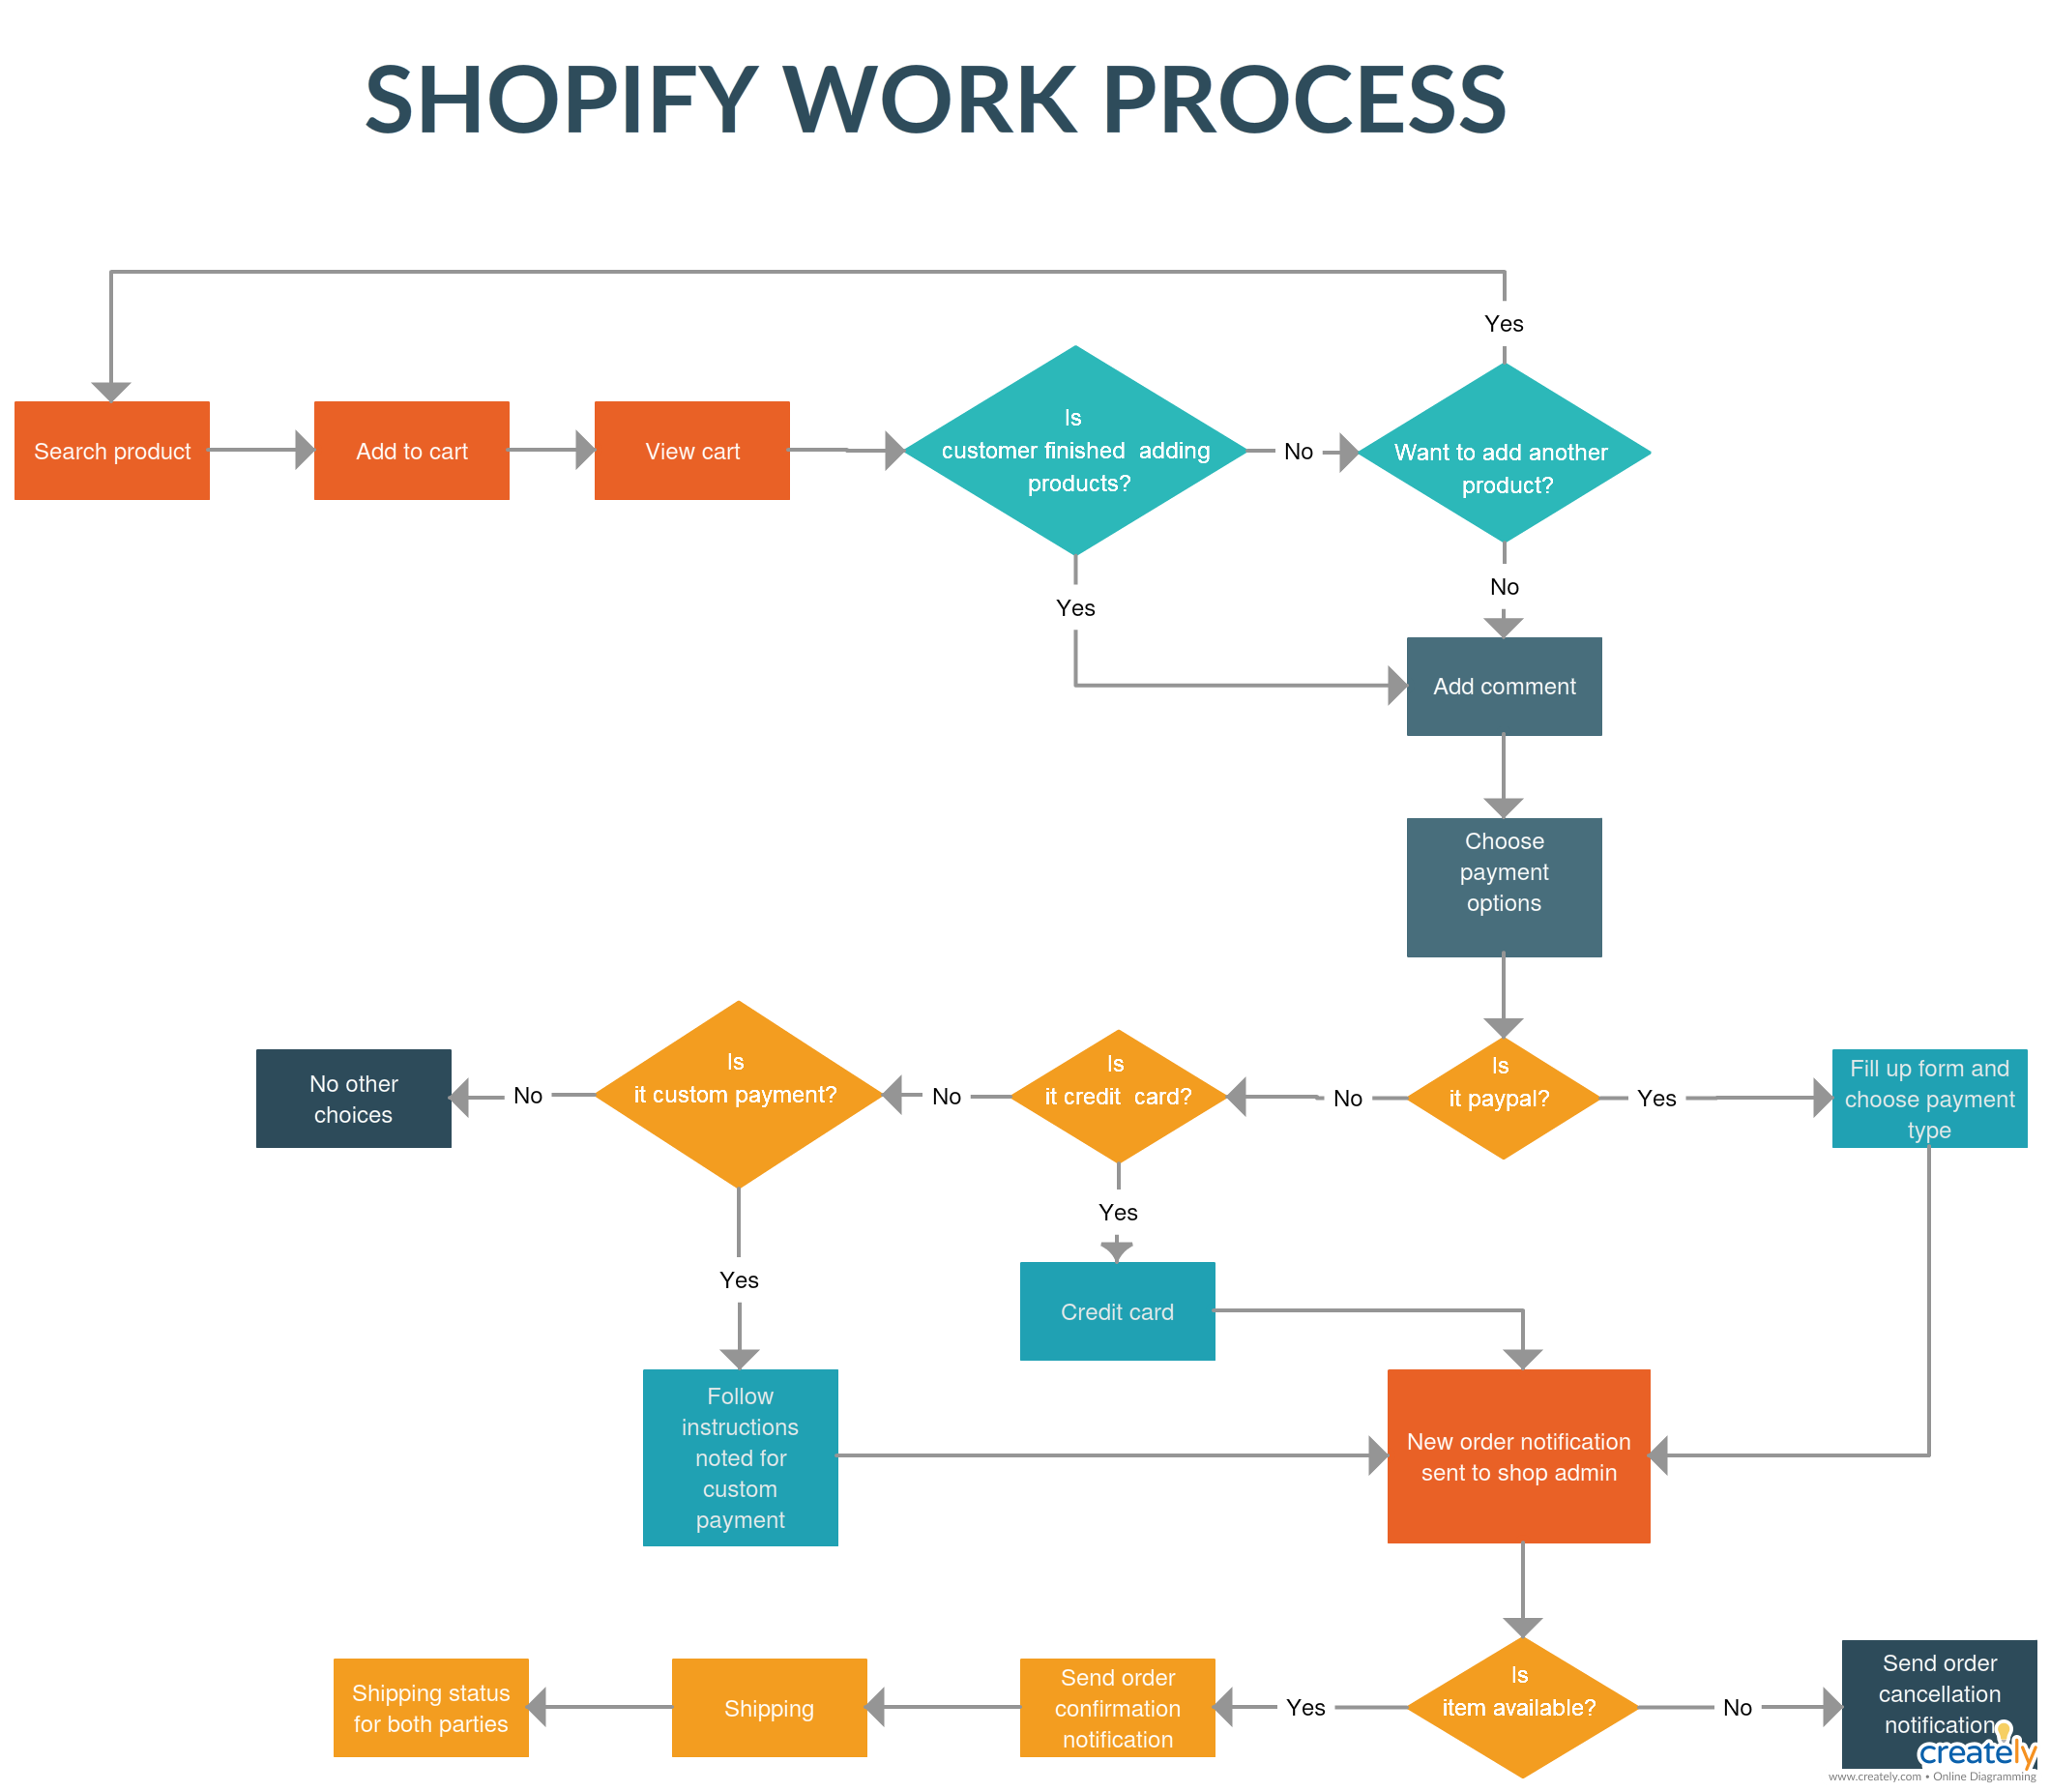 hight resolution of shopify work process great illustration of shopify flow chart where online shoping experience is explained